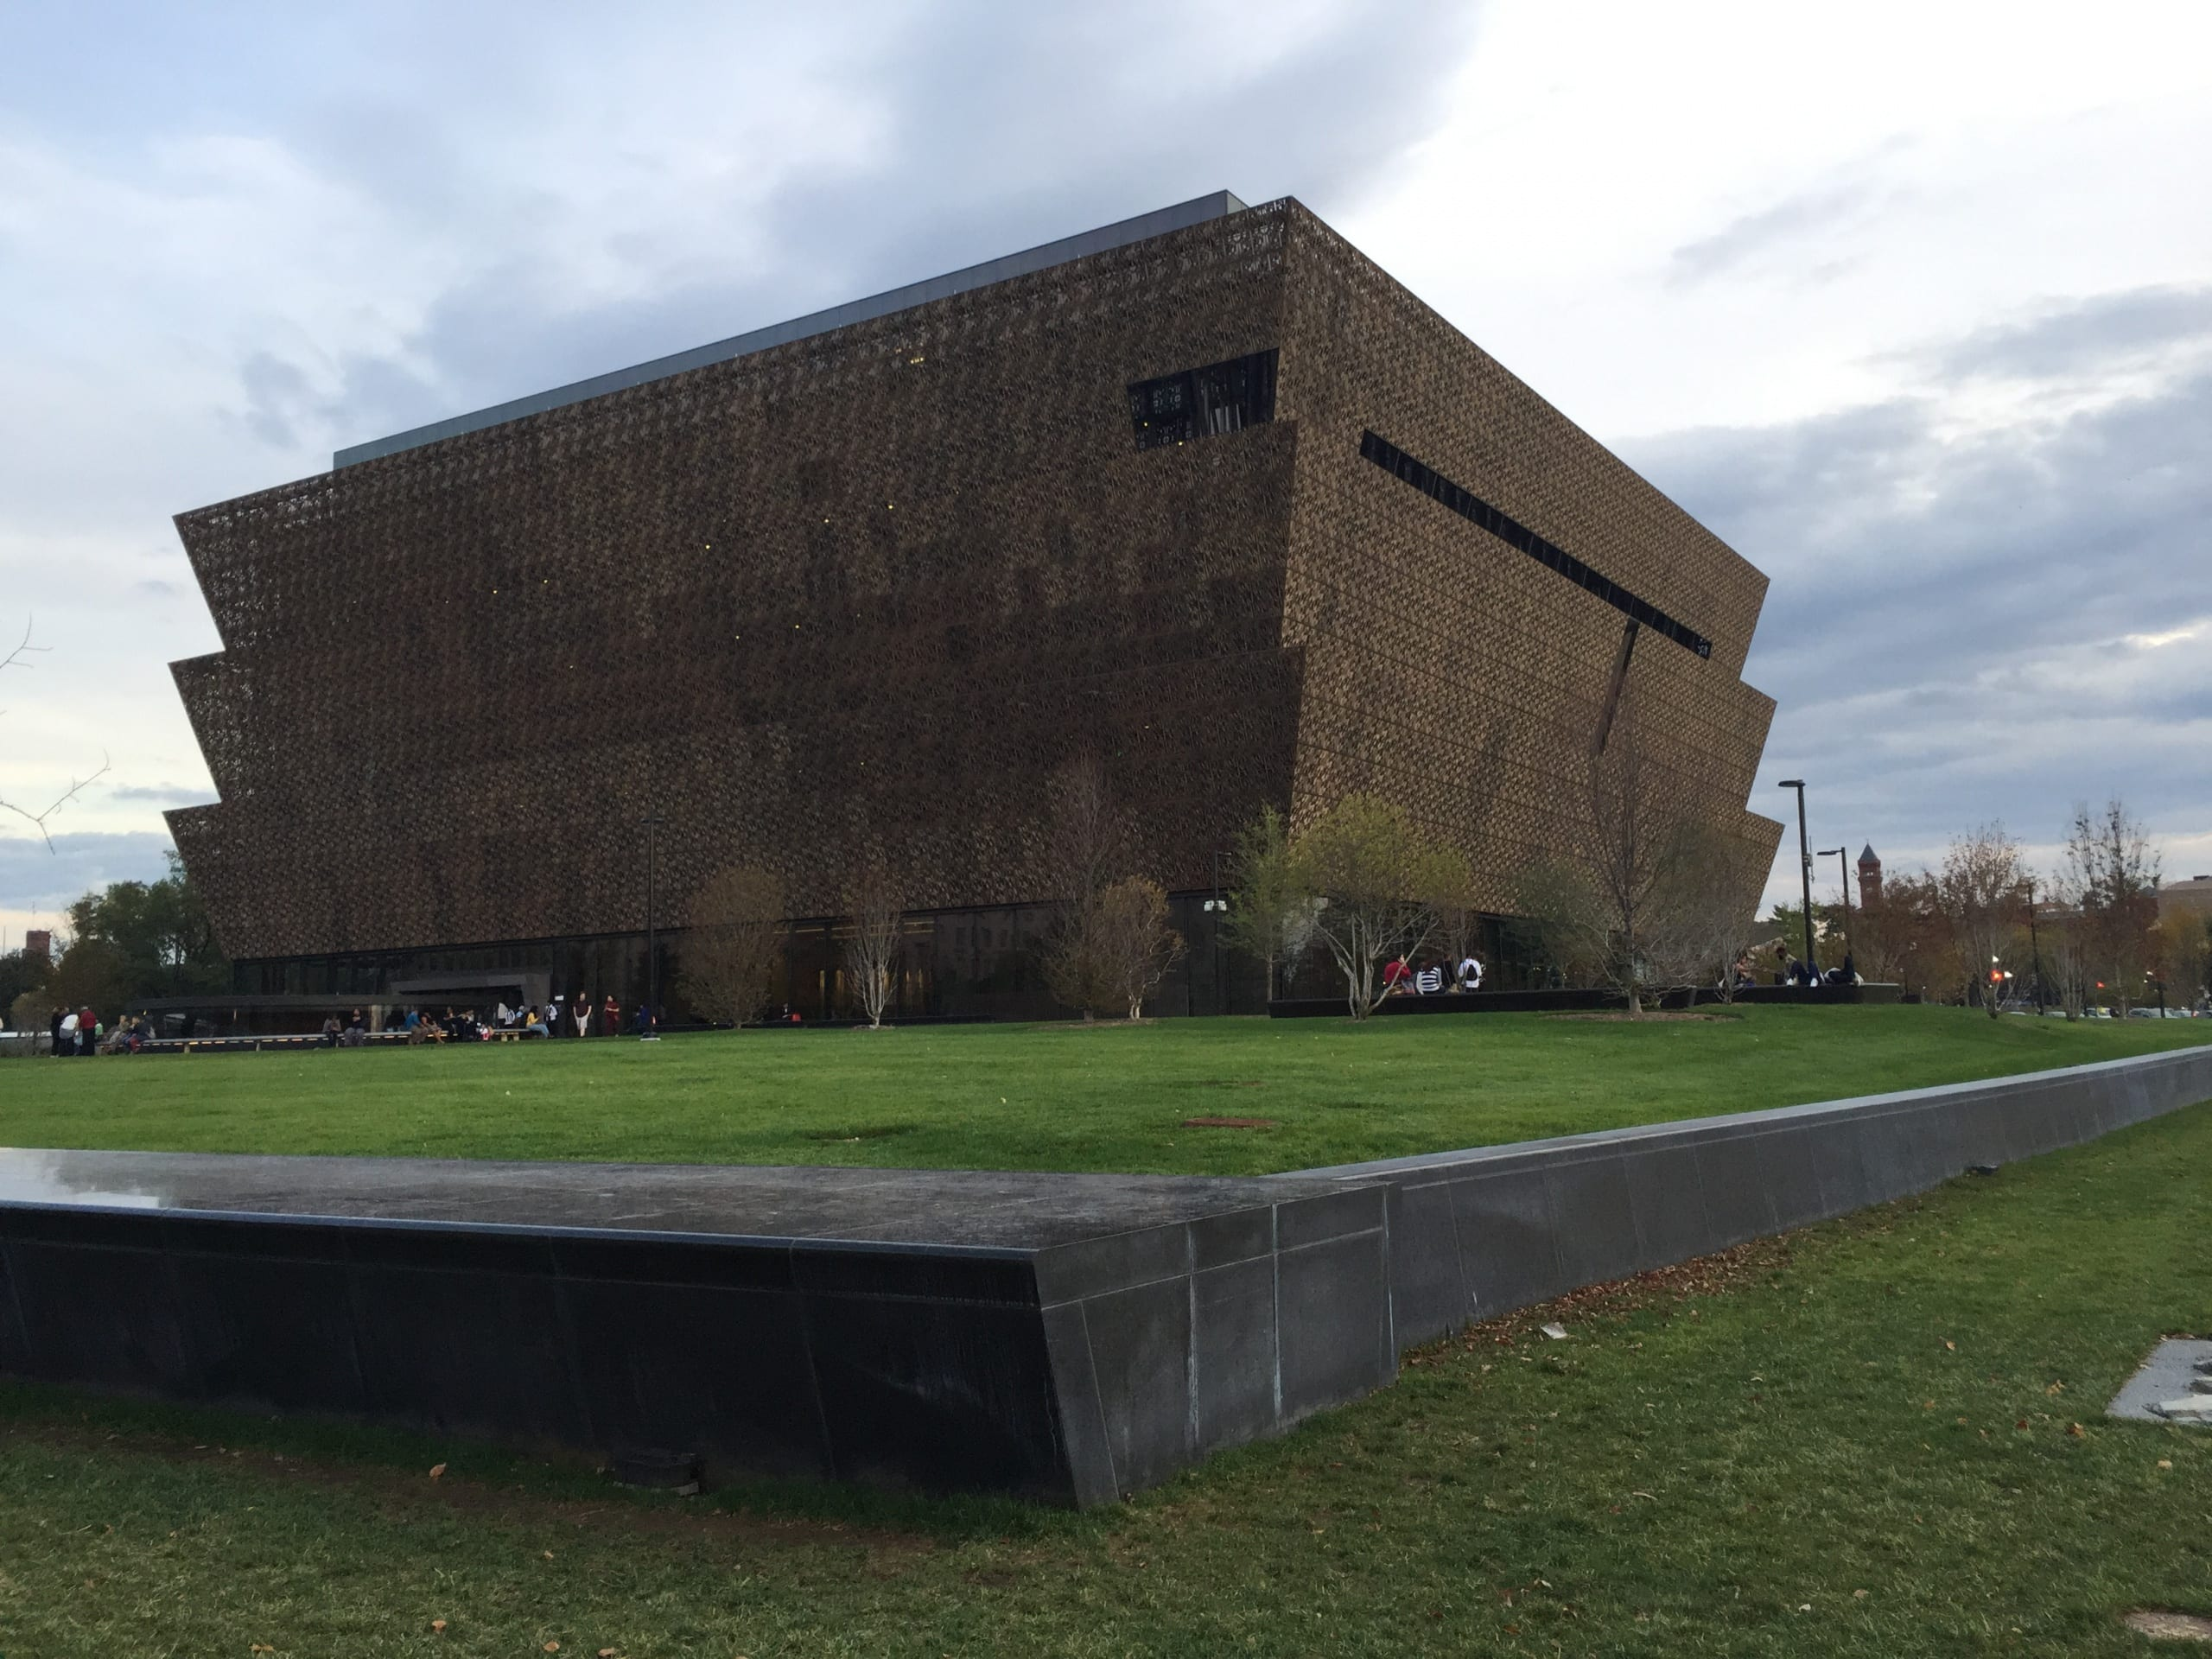 View of the NMAAHC building , showing the metal screen cladding of the exterior